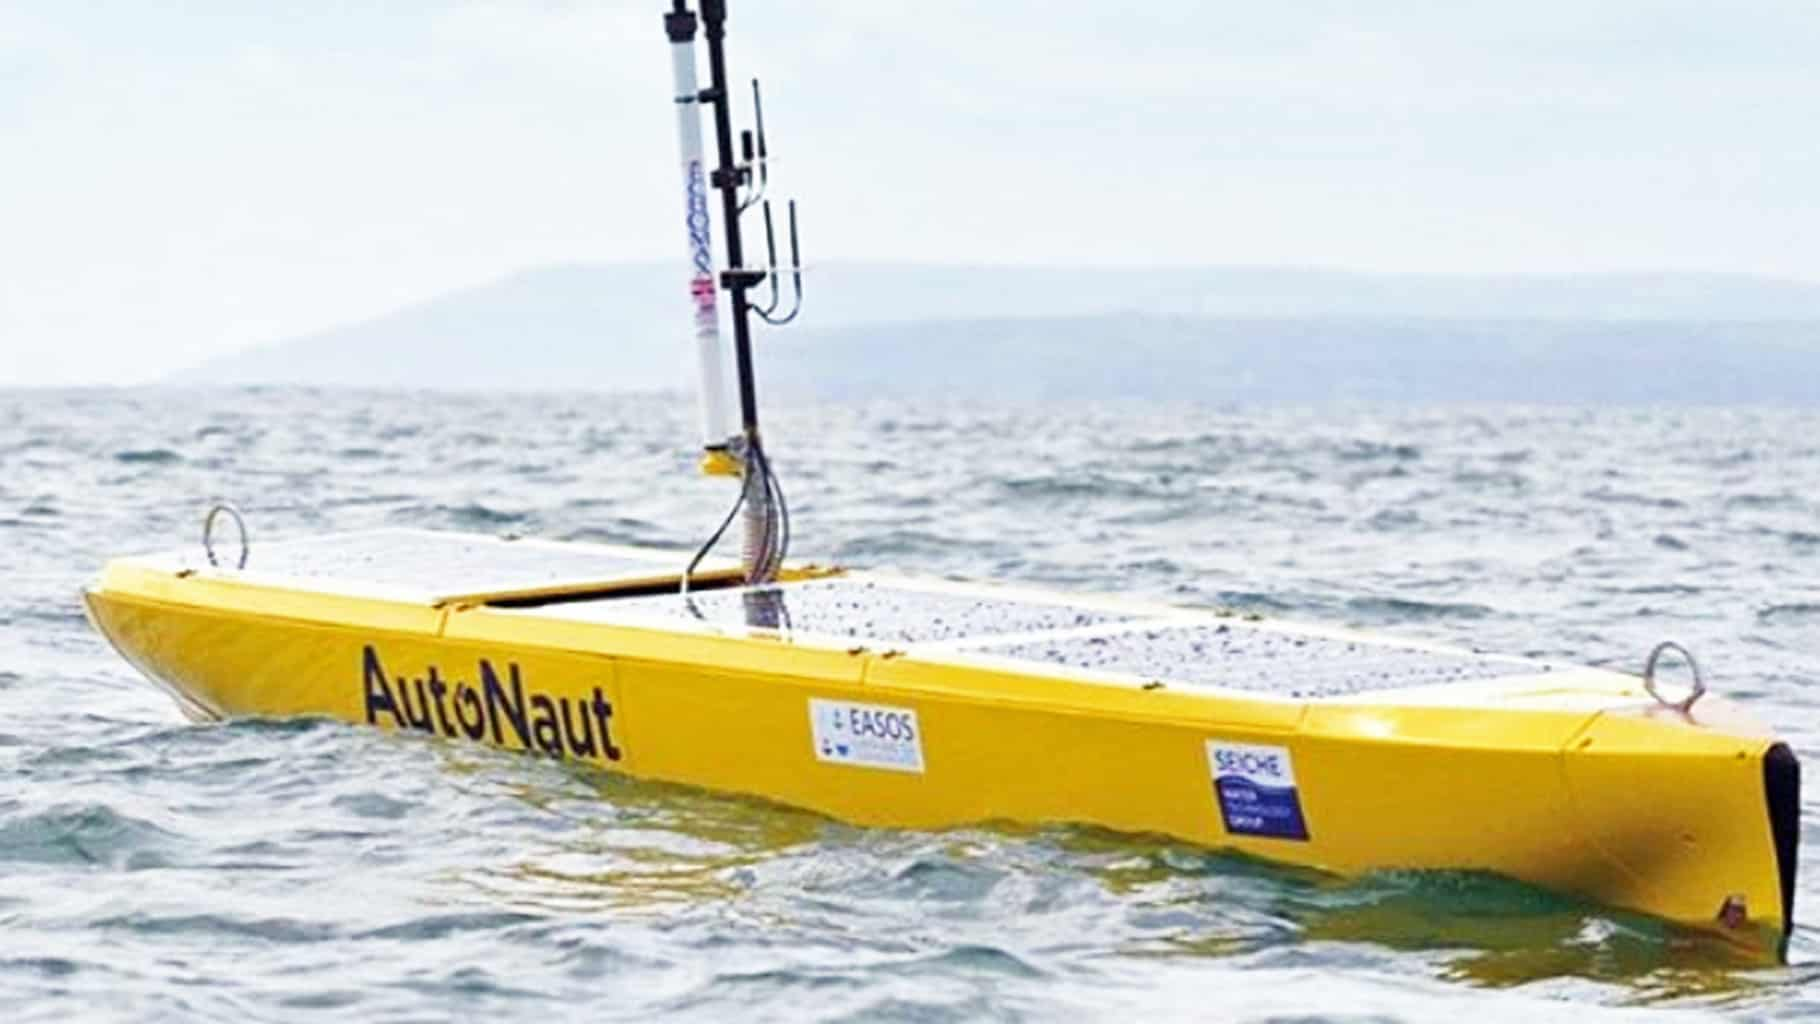 Low-power, long-endurance autonomy might find takers in the maritime industry (Photo: Autonaut)